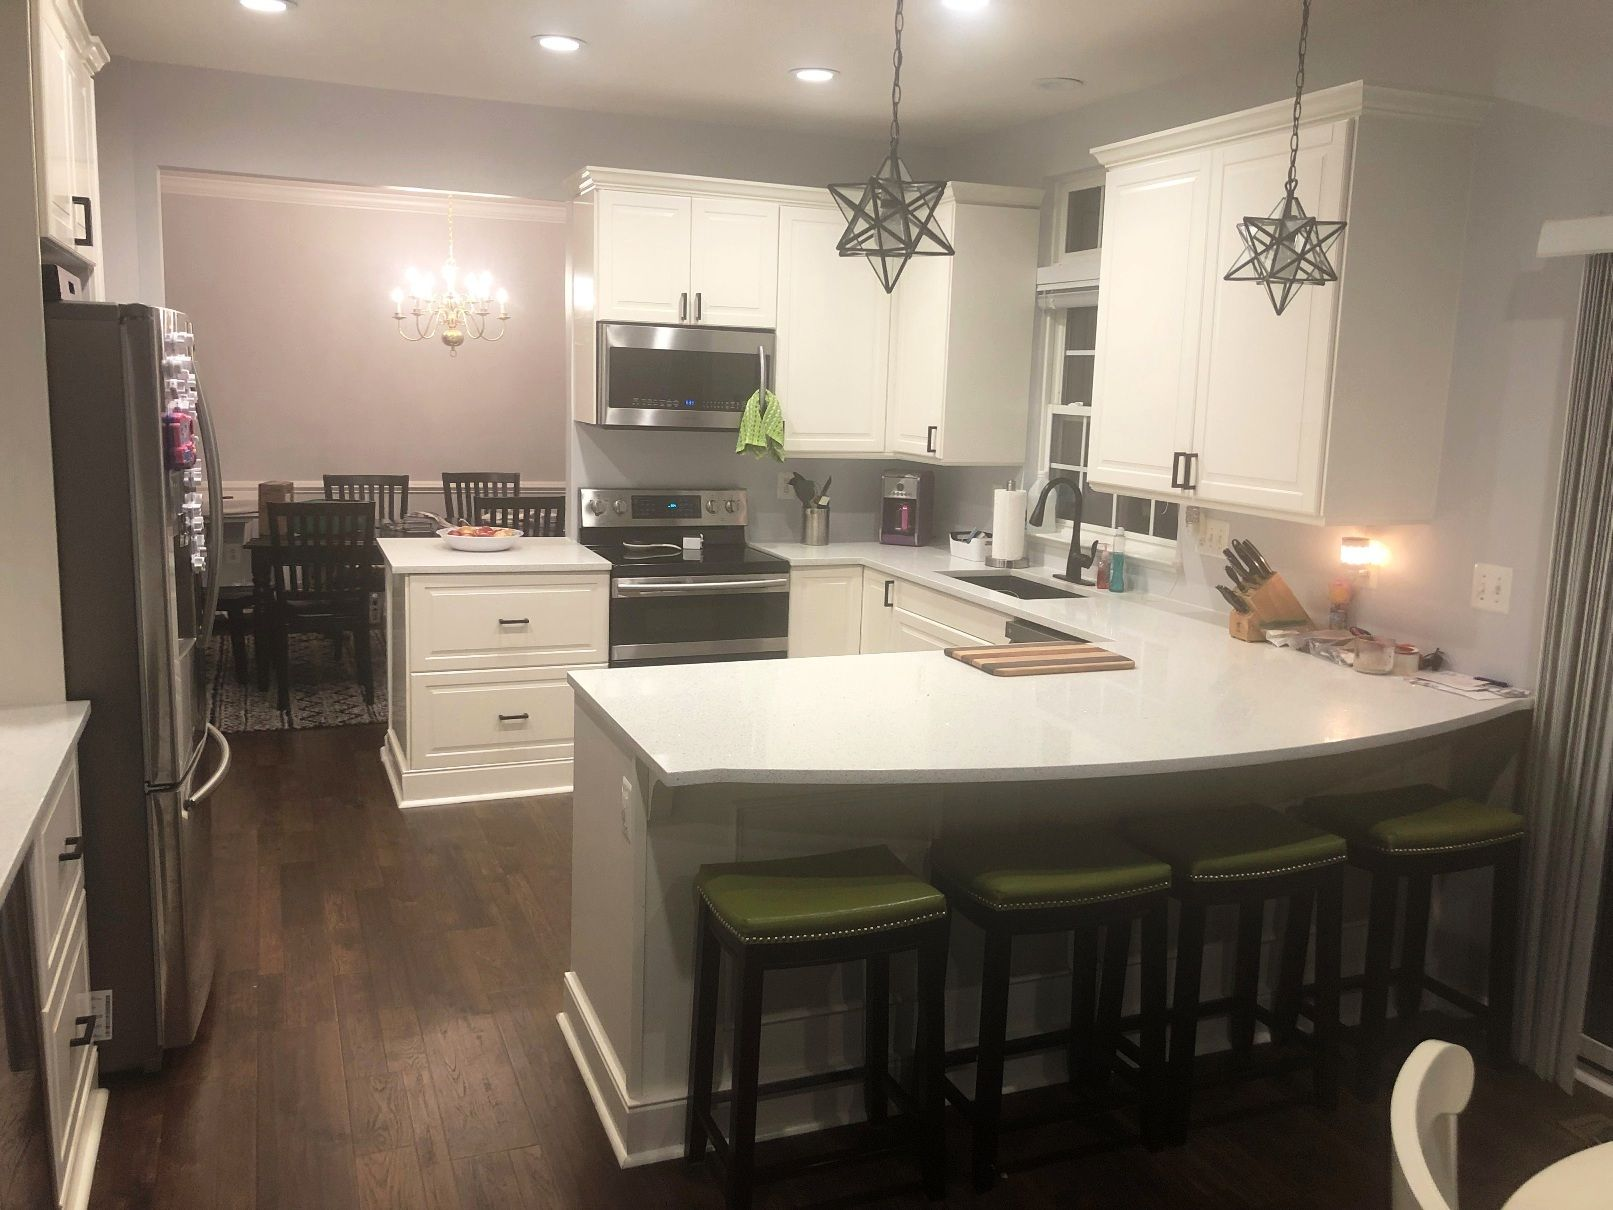 A Classic Kitchen Design By Any Definition Requires A Sense Of Timelessness Quality And Outs In 2020 Kitchen Inspiration Design Ikea Kitchen Design White Ikea Kitchen